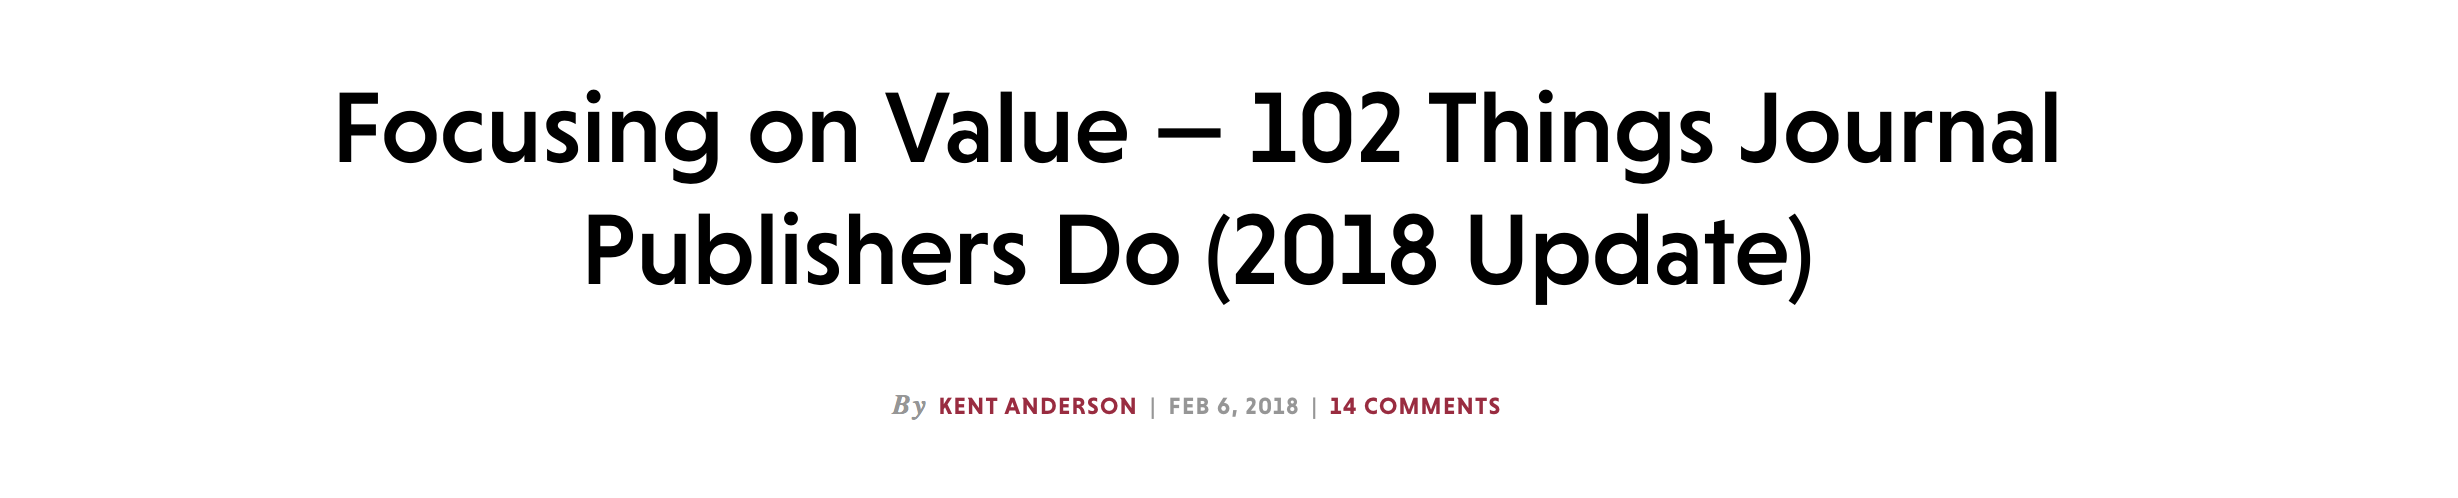 102 Things Publisher's Do